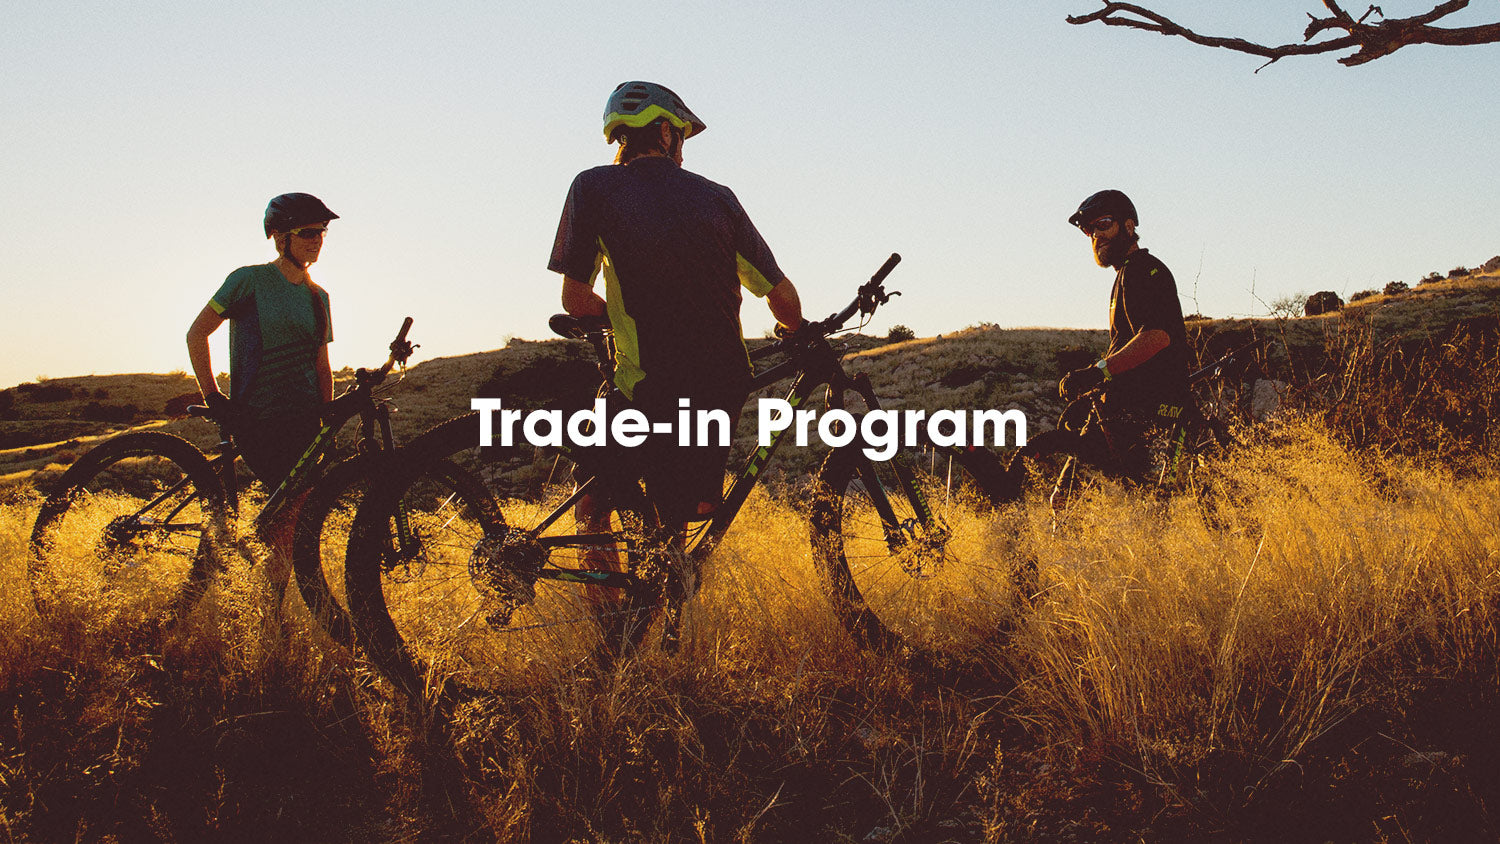 Trek Bicycle Tustin trade-in program for Southern California